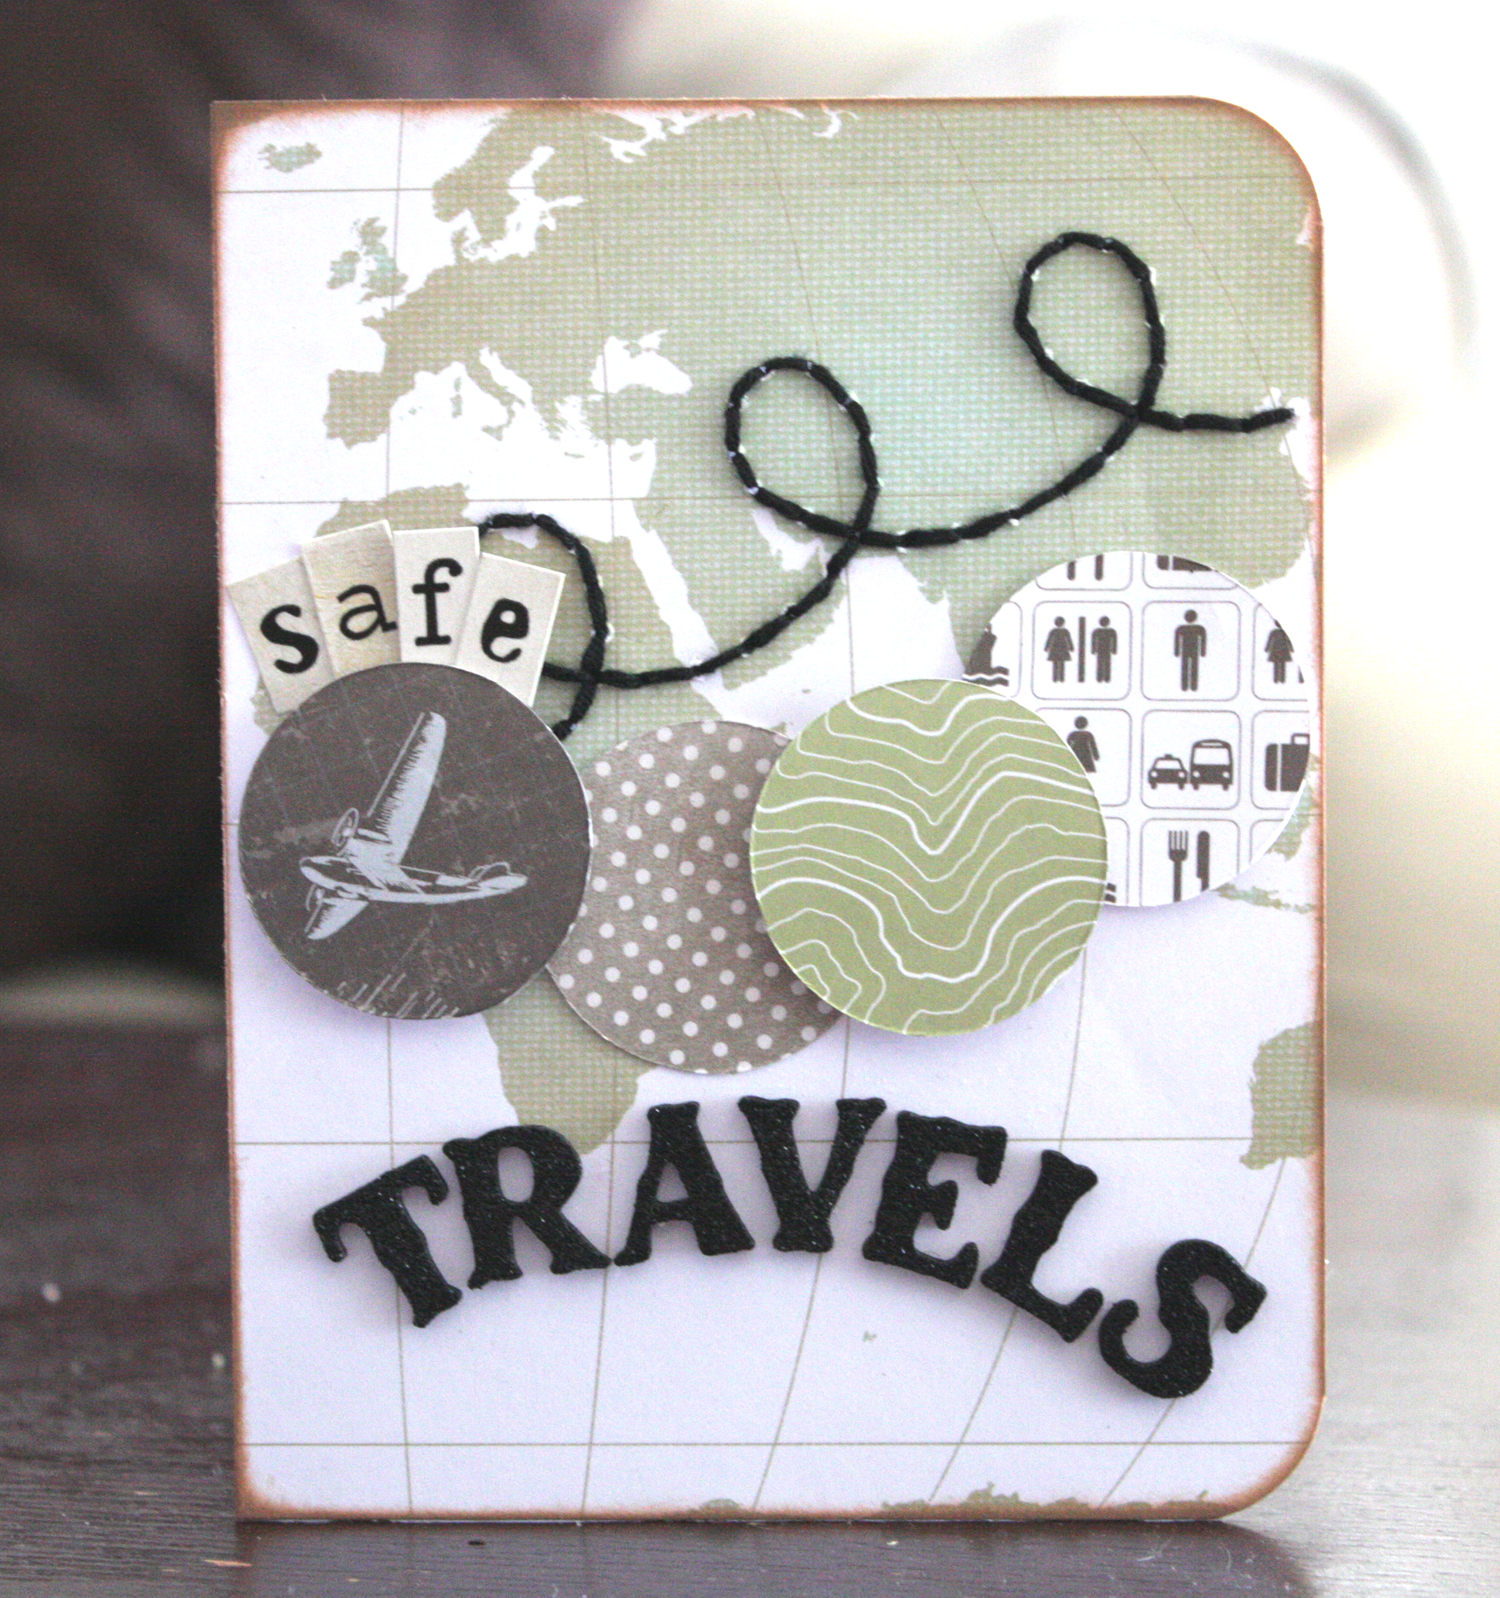 Travel Safely Quotes: Safety Travel Quotes. QuotesGram